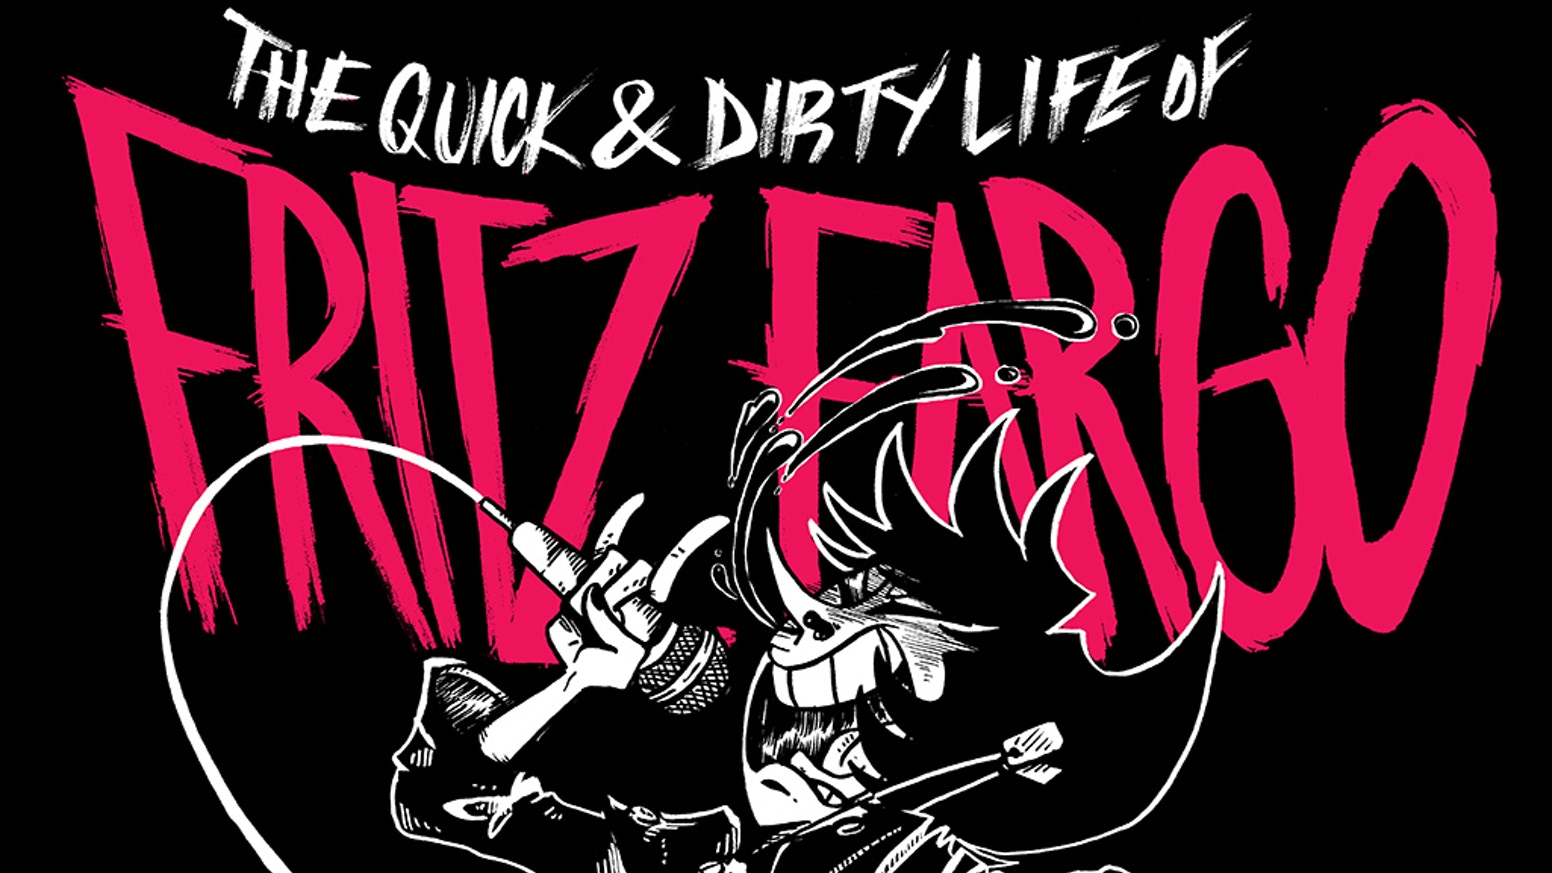 The first 5 years of The Quick and Dirty Life of Fritz Fargo collected into a limited run graphic novel.